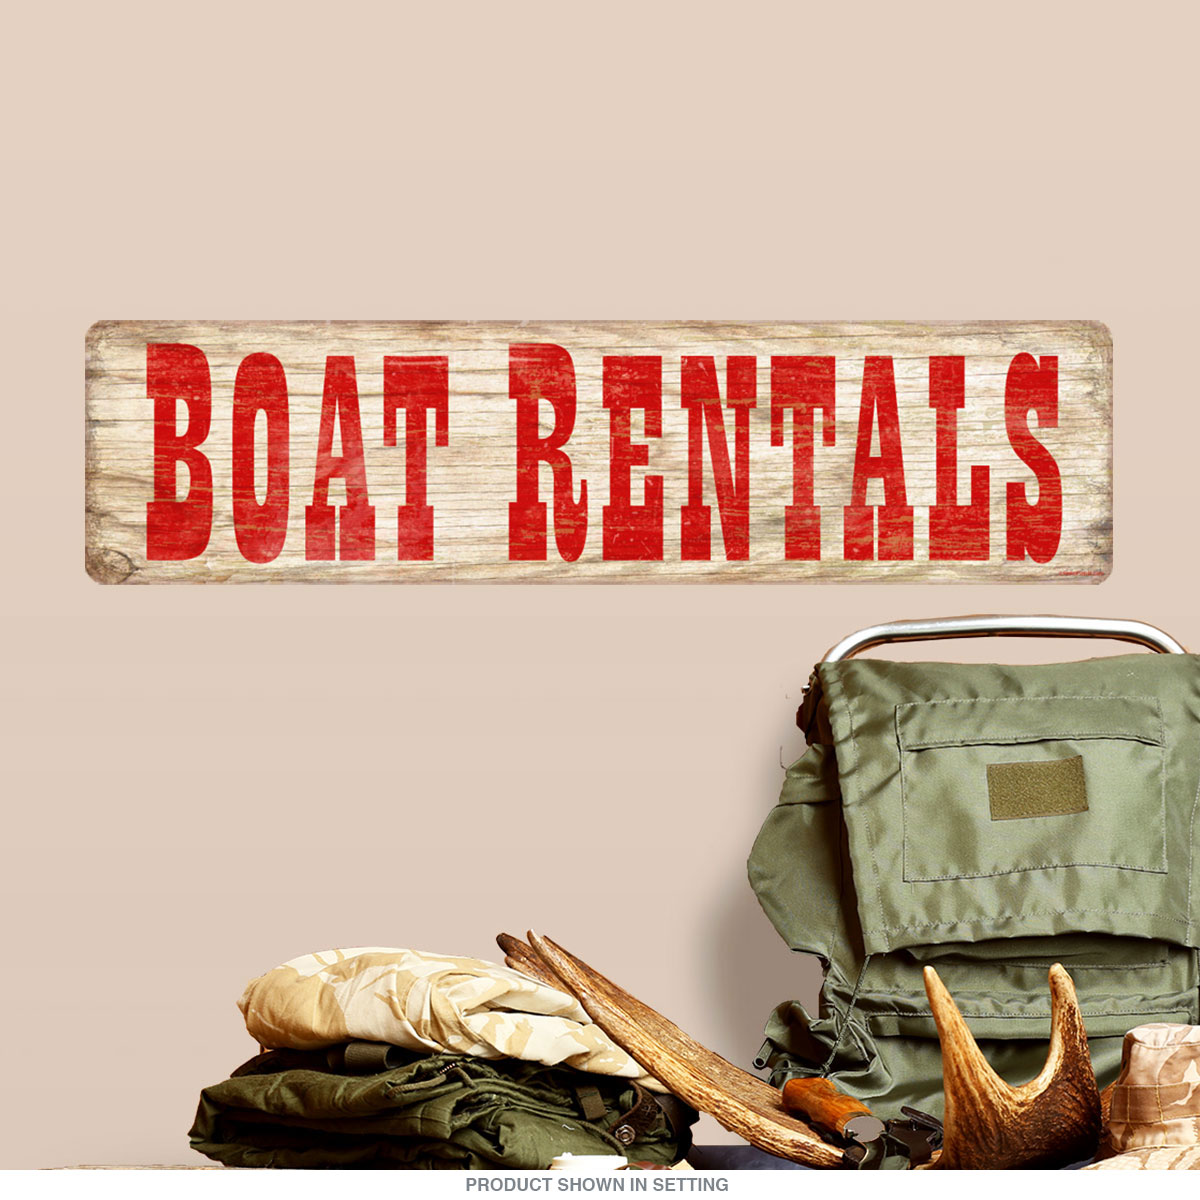 Boat Rentals DriftwoodLook Wall Decal Rustic Cabin Decor - Boat decalsboat decals sticker promotionshop for promotional boat decals